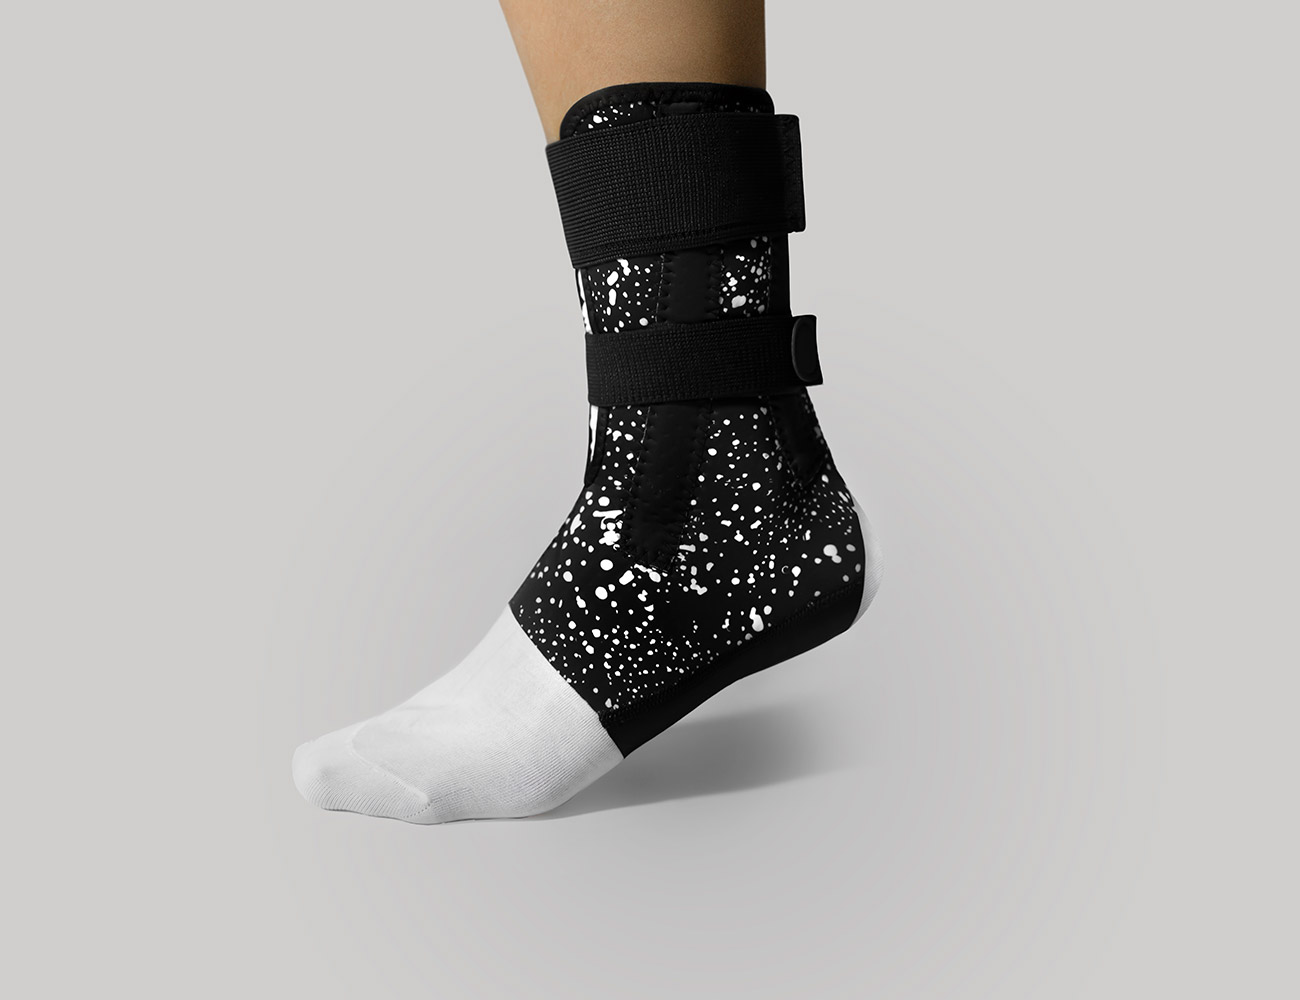 Top Ankle Support With 4 Flexible Side Stays